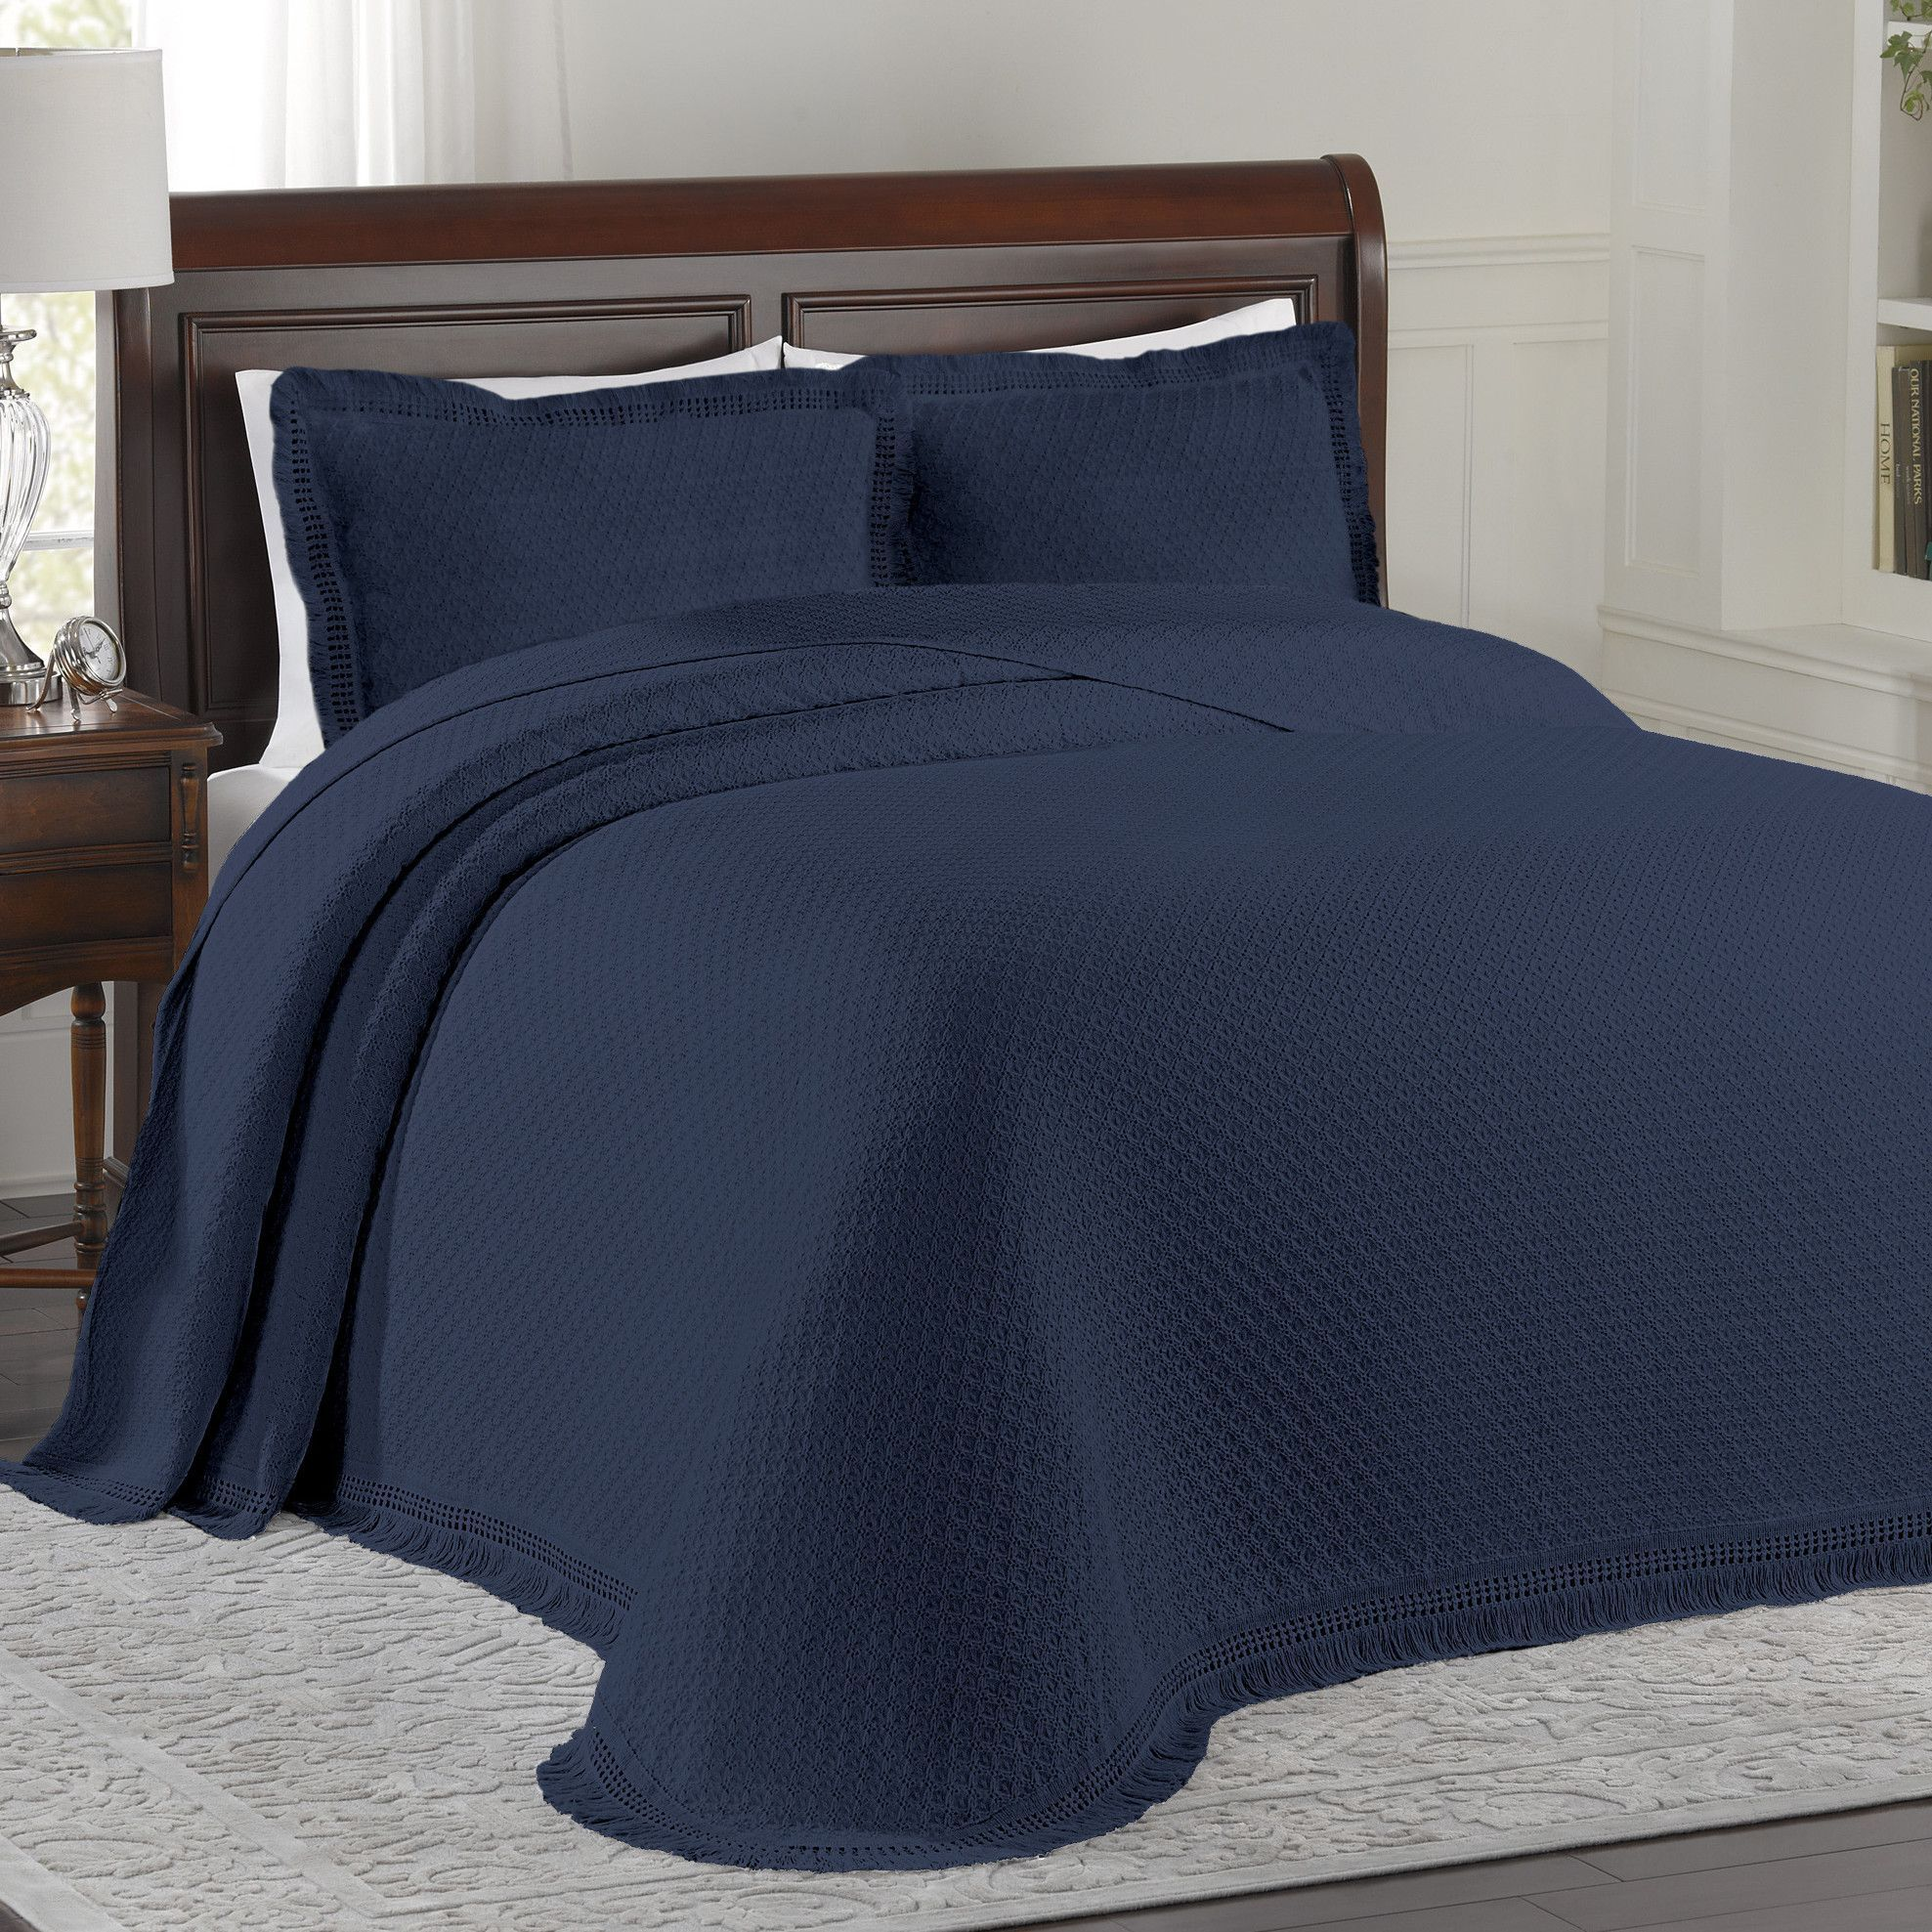 Beverly Hills Bedspread